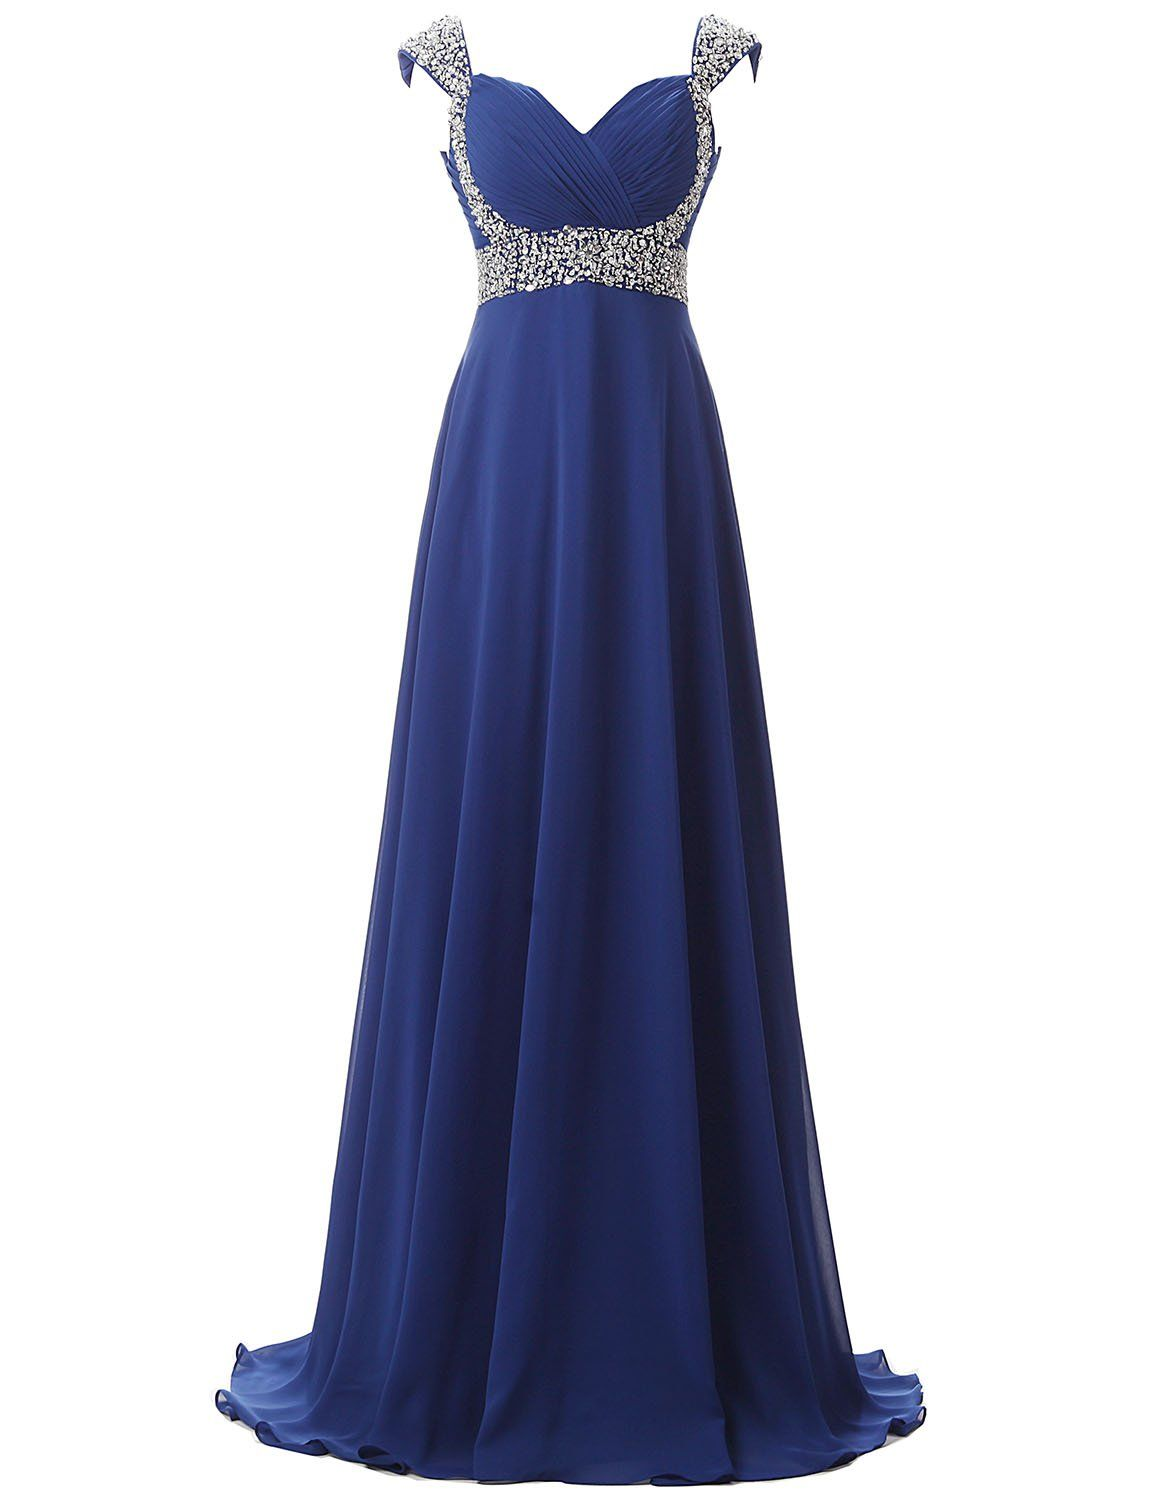 Clearbridal womens long royal blue prom dress evening gown with